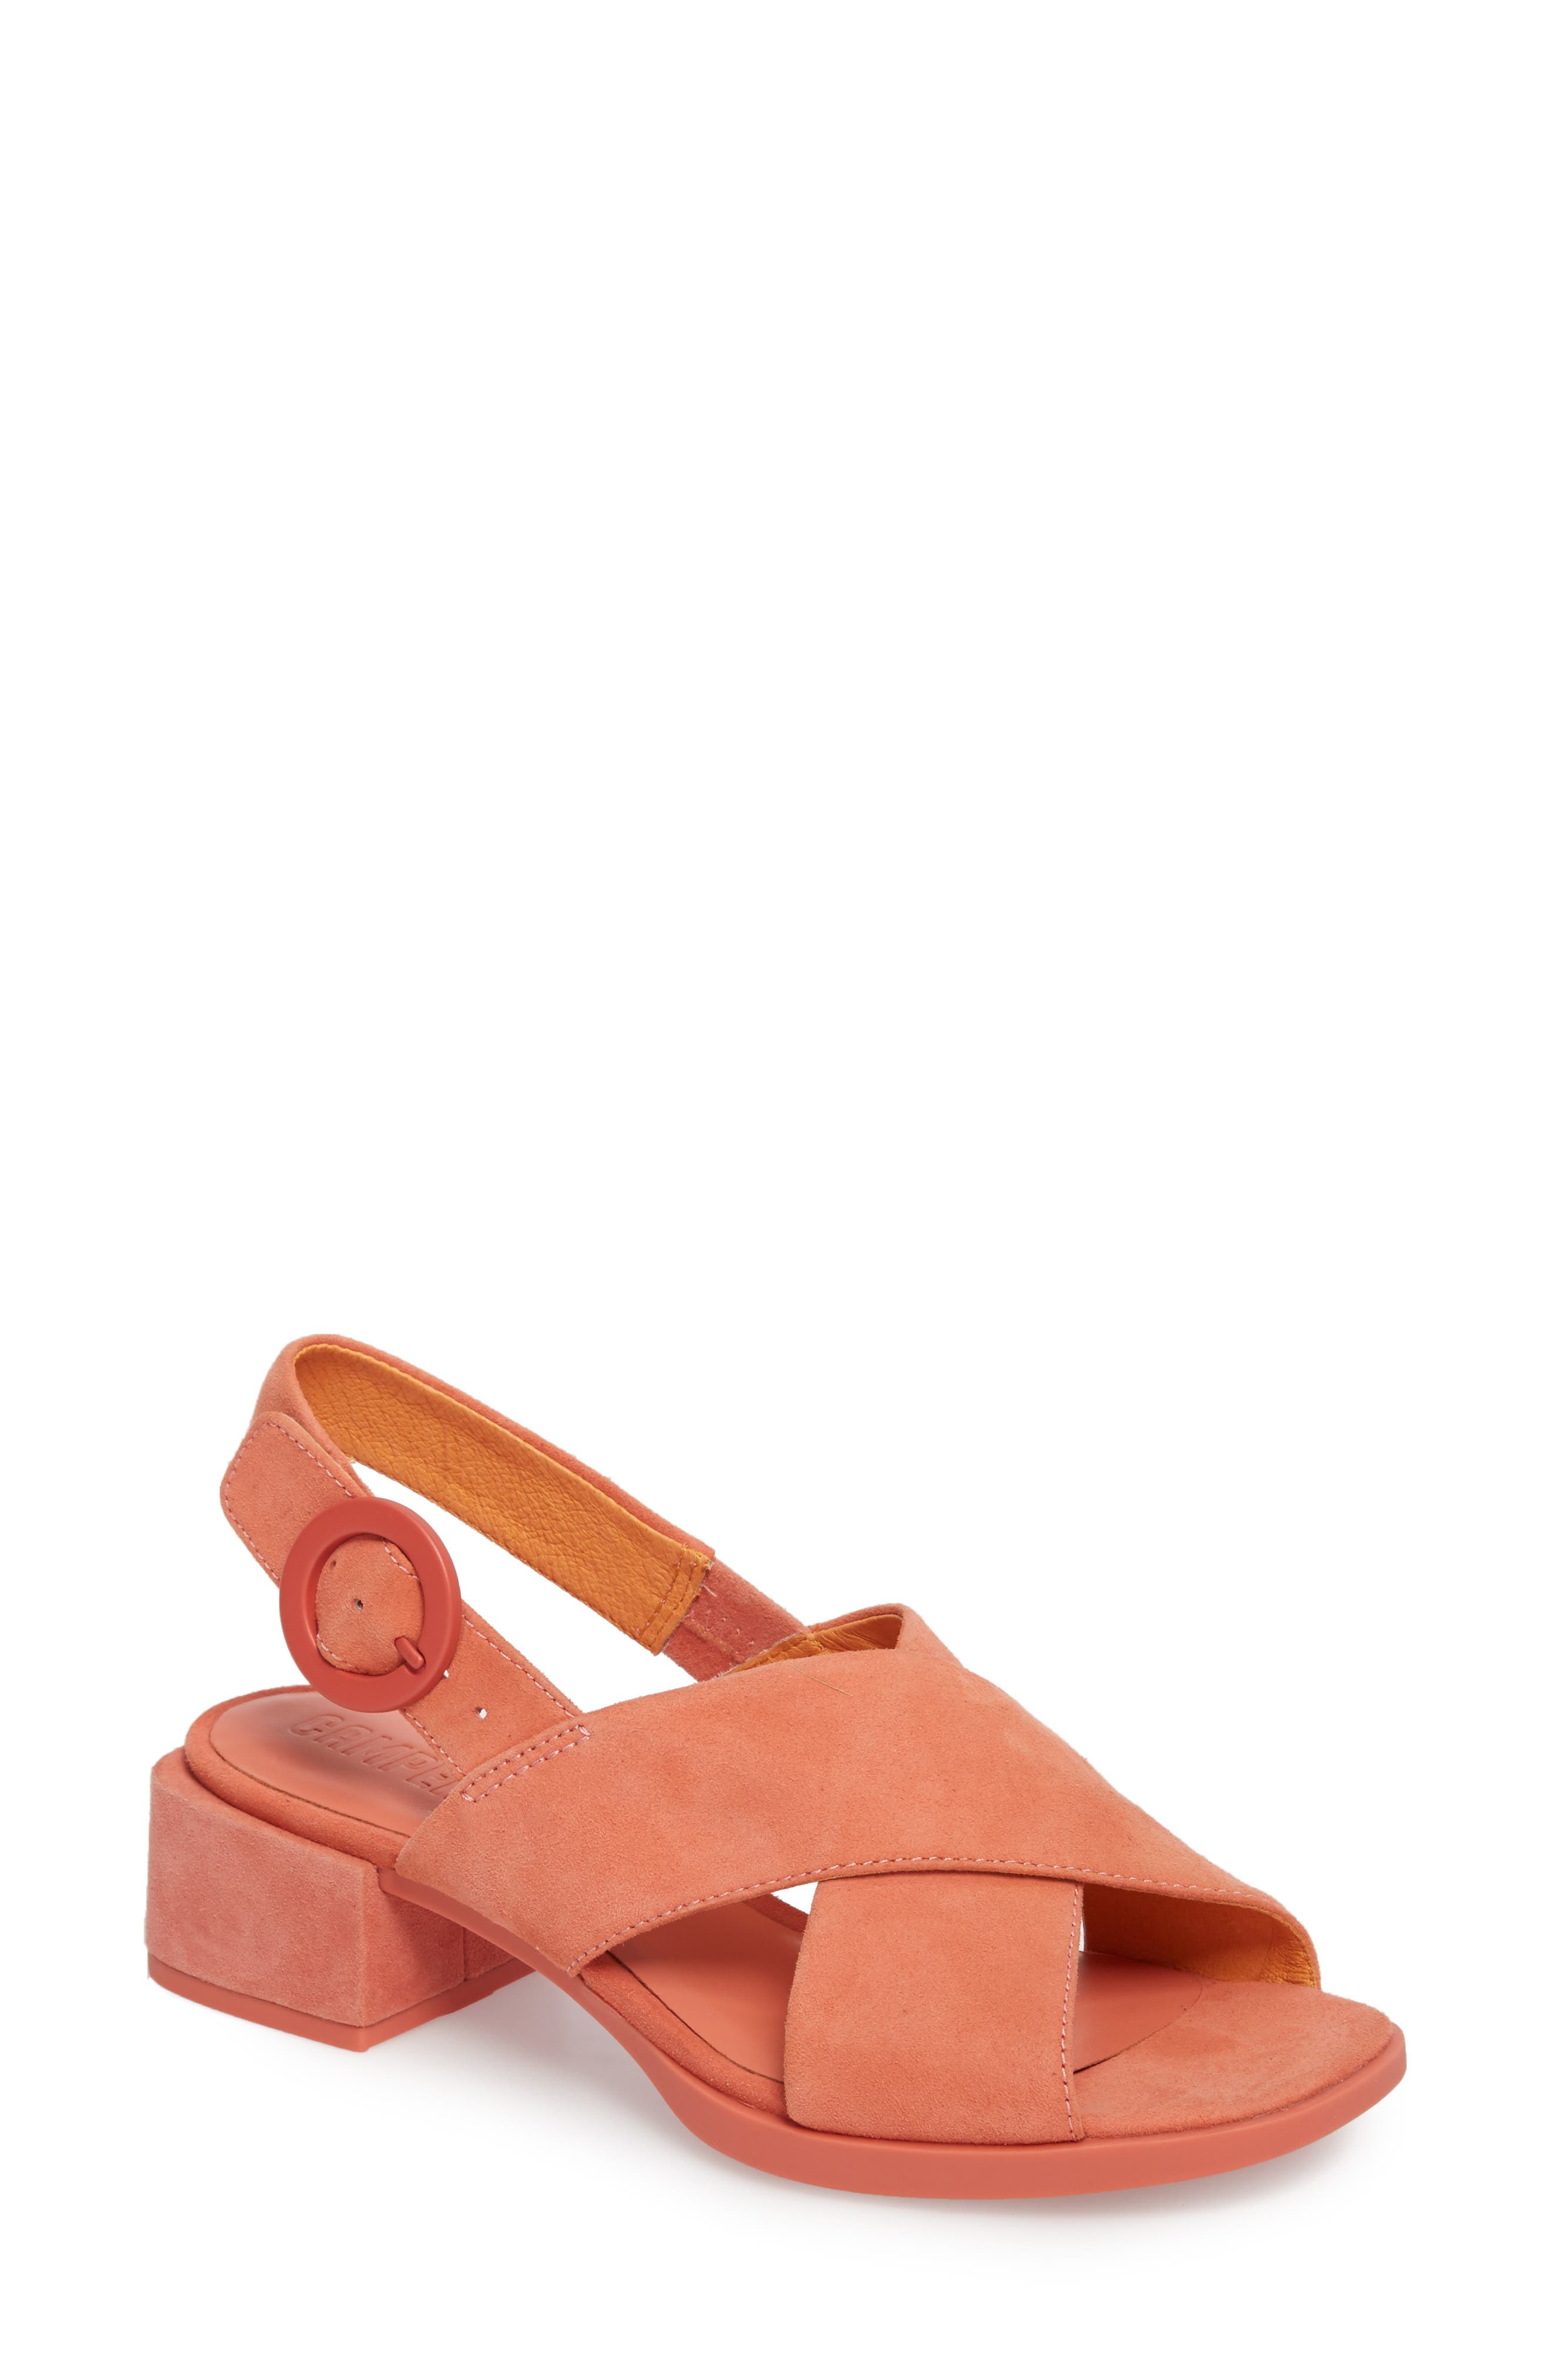 Kobo Cross Strap Sandal,                         Main,                         color, MEDIUM PINK LEATHER